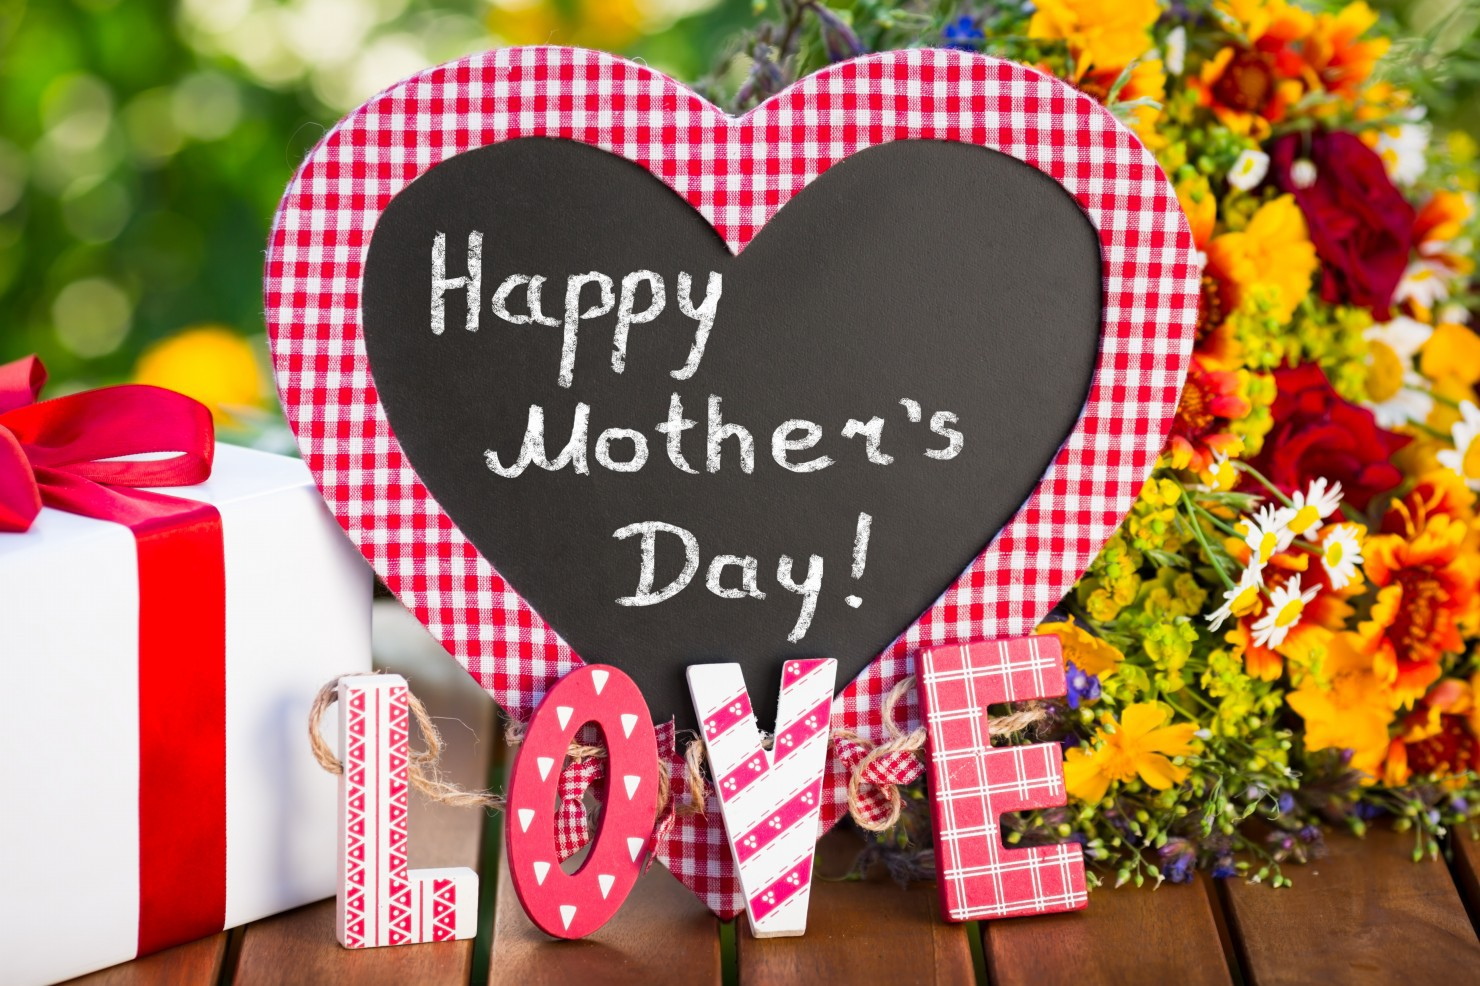 1480x986 Mother's Day 2020 HD Images: Thanks Your Mother For ...